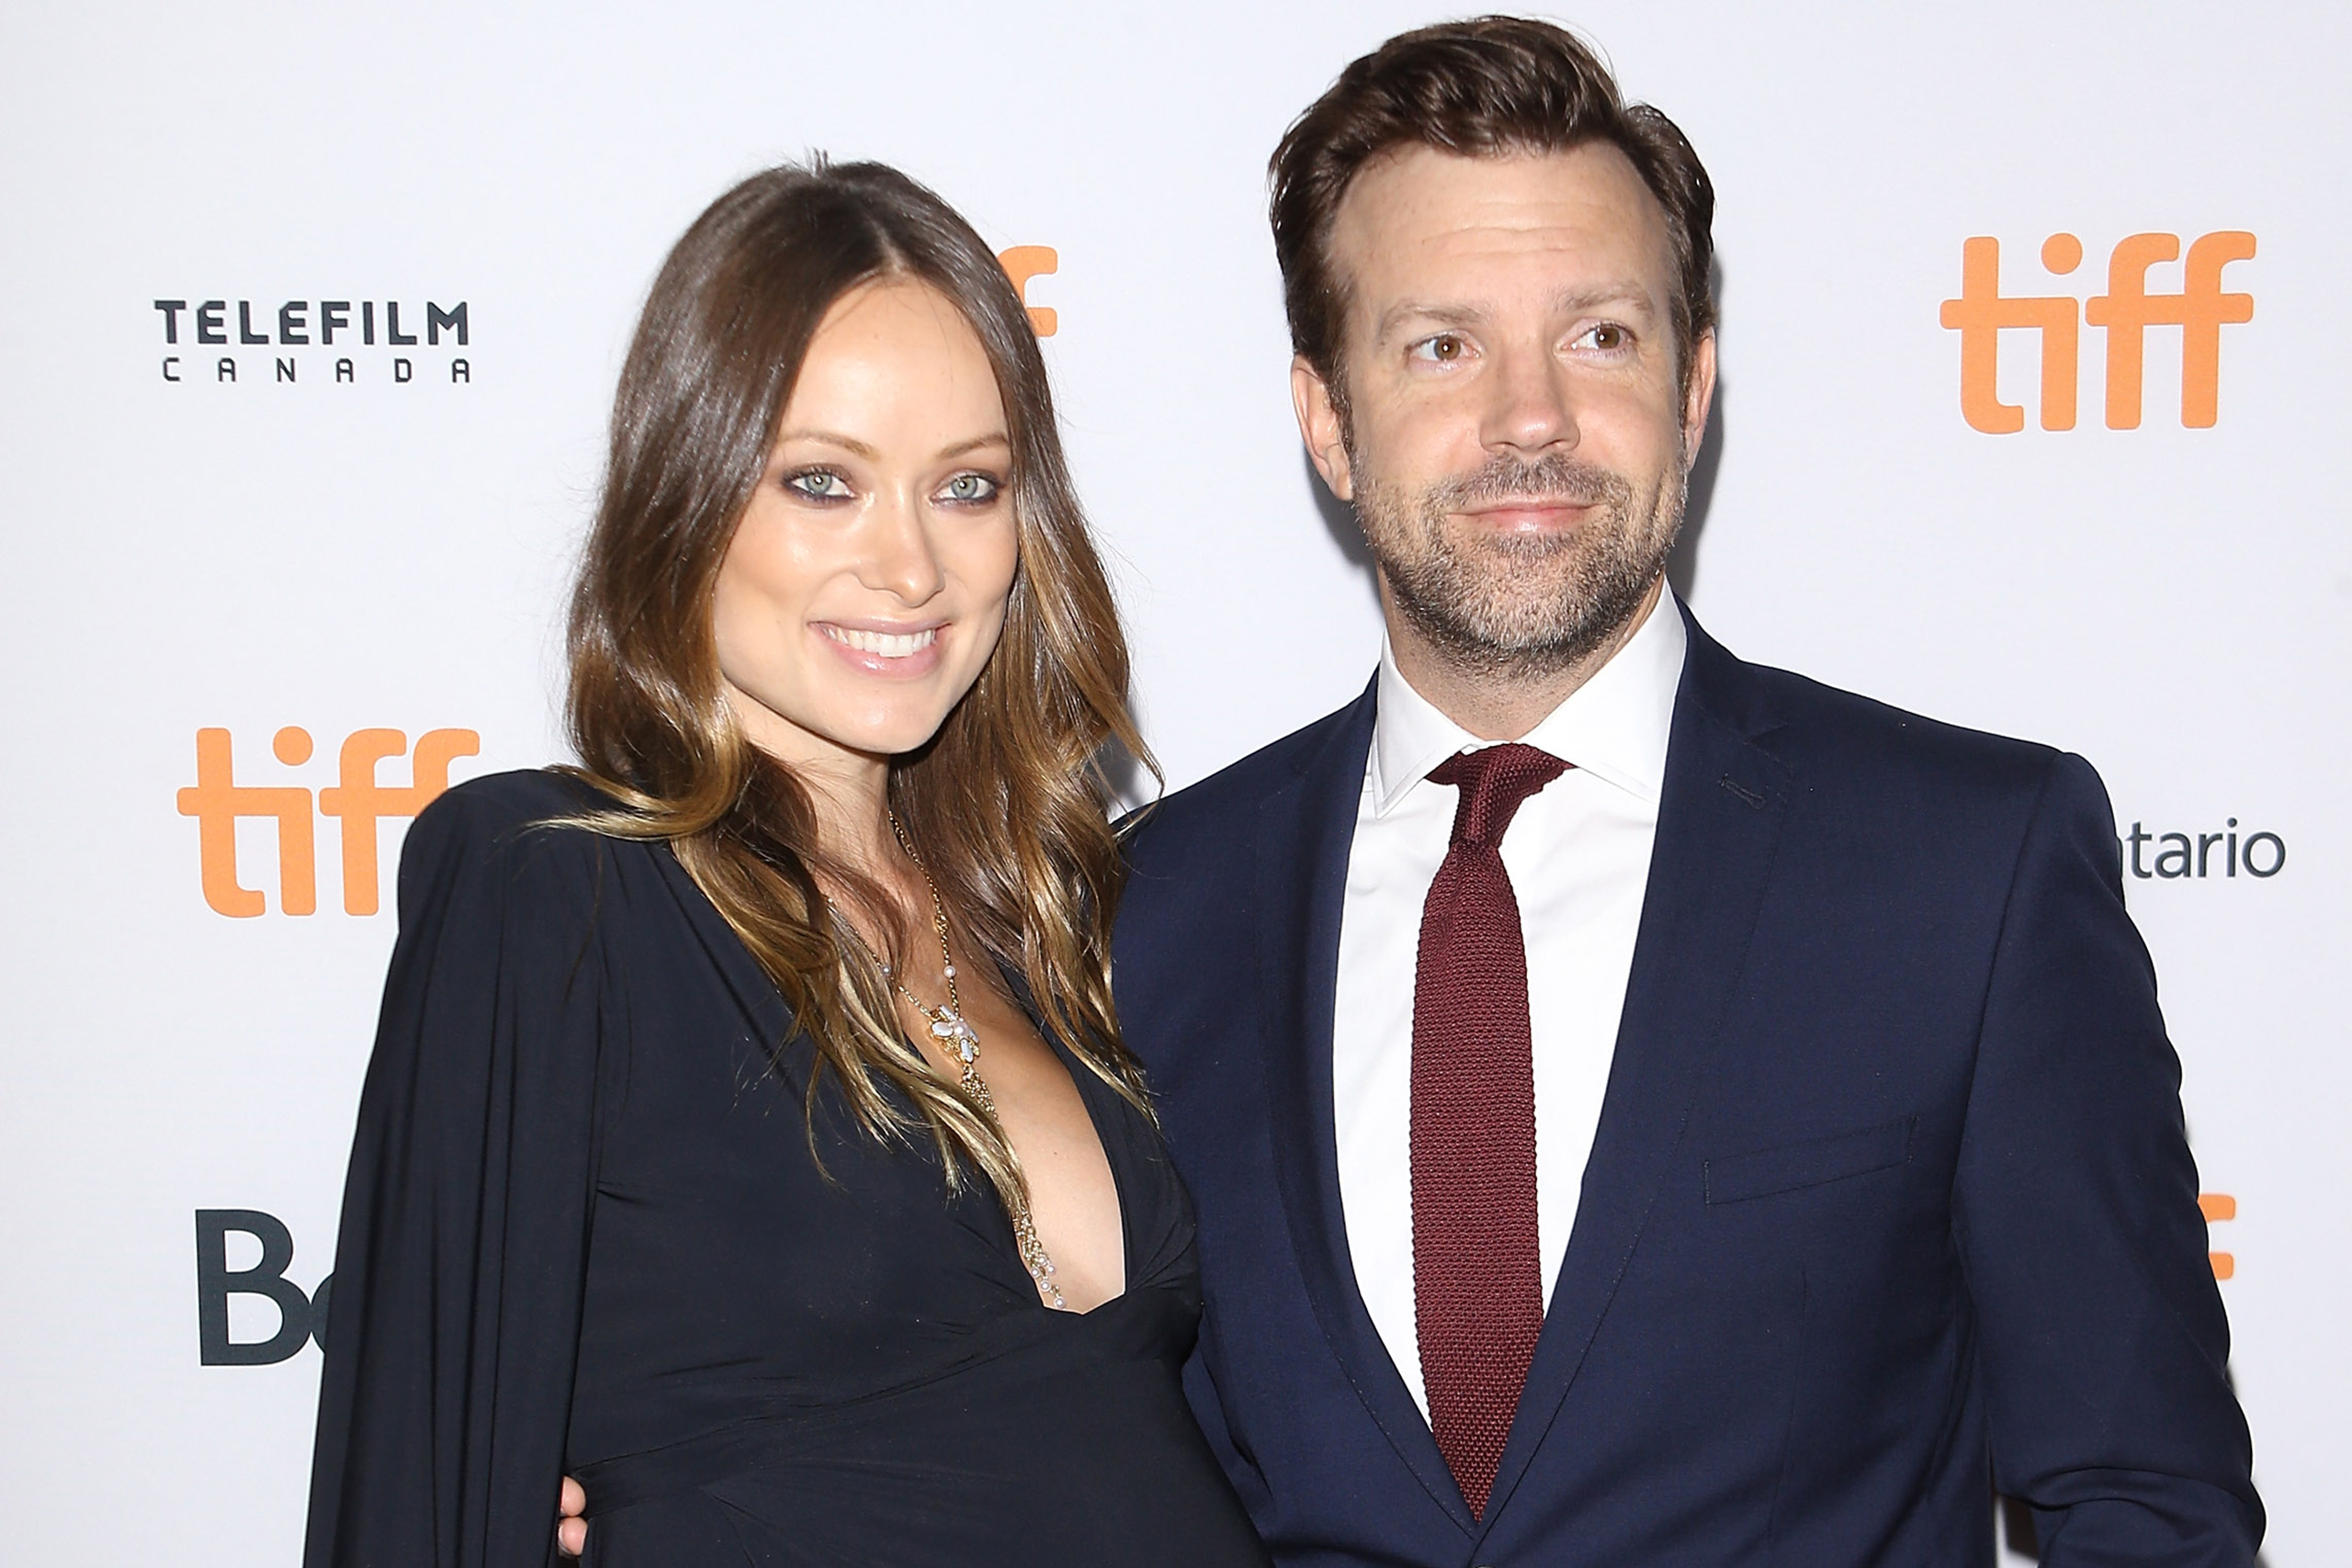 Olivia Wilde and Jason Sudeikis arrive at the 2016 Toronto International Film Festival's  Colossal  premiere at Ryerson Theatre in Toronto on Sept. 9, 2016.